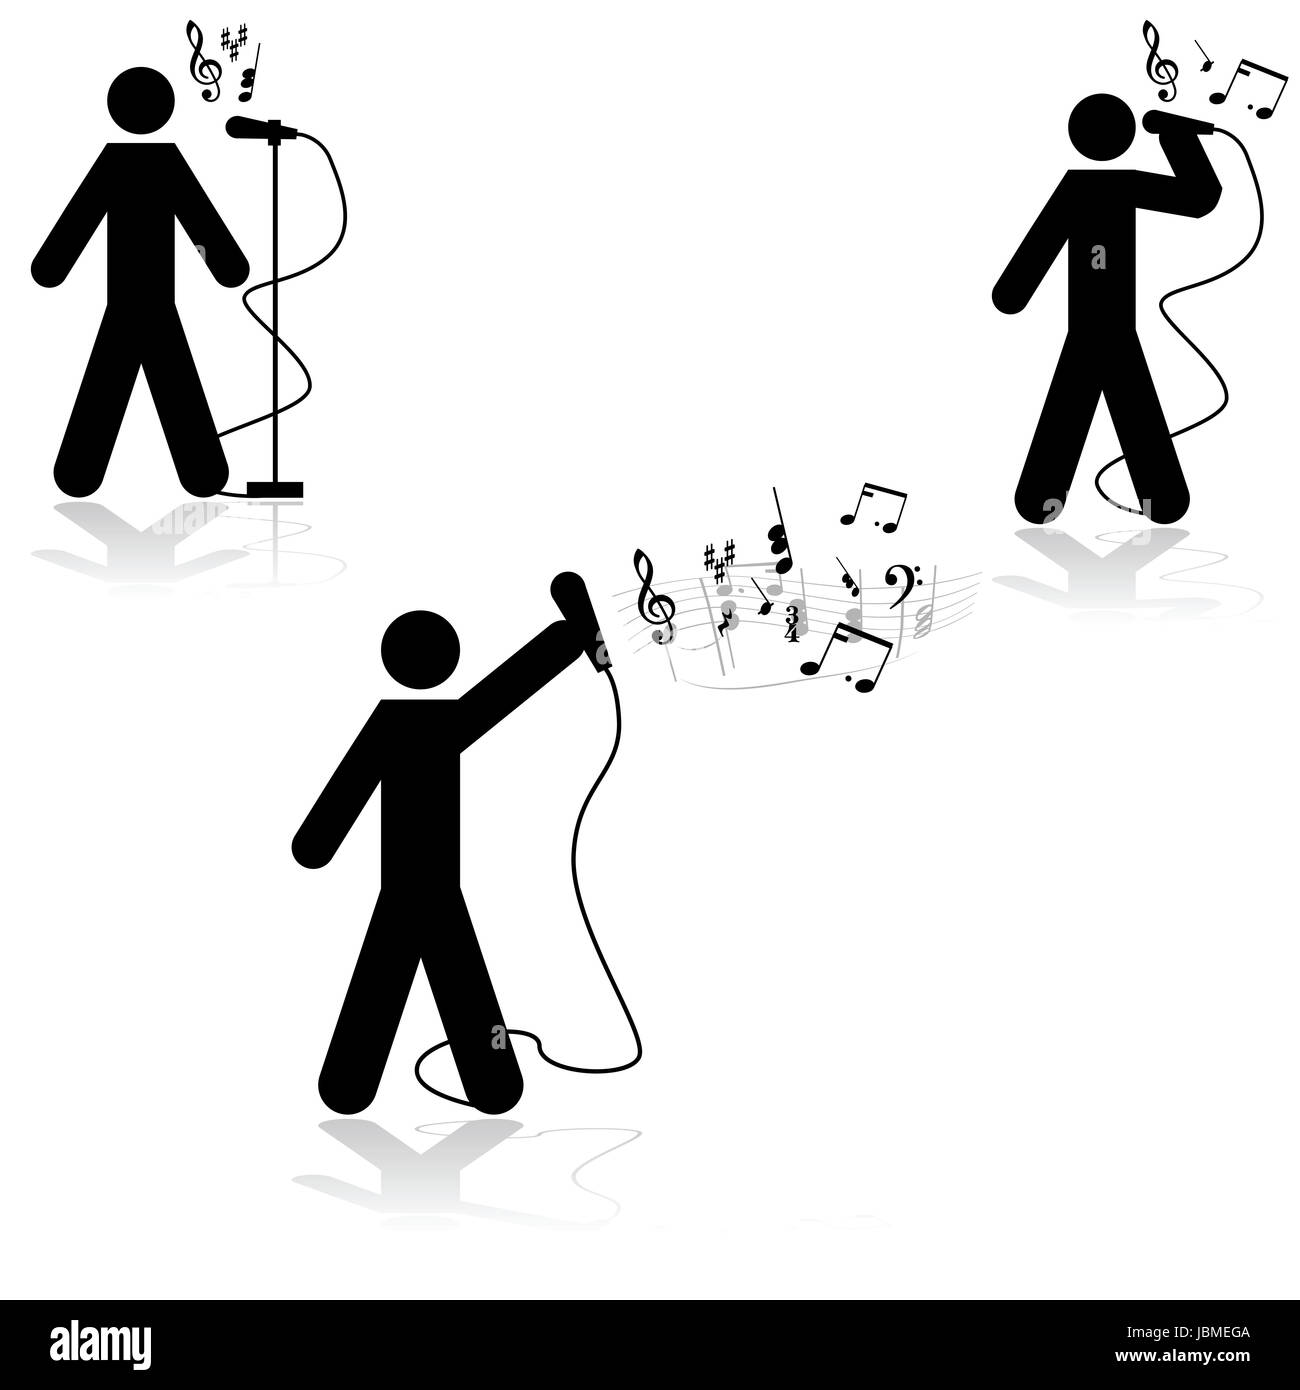 Icon illustration showing a man in three different singing poses with musical notes beside him - Stock Image